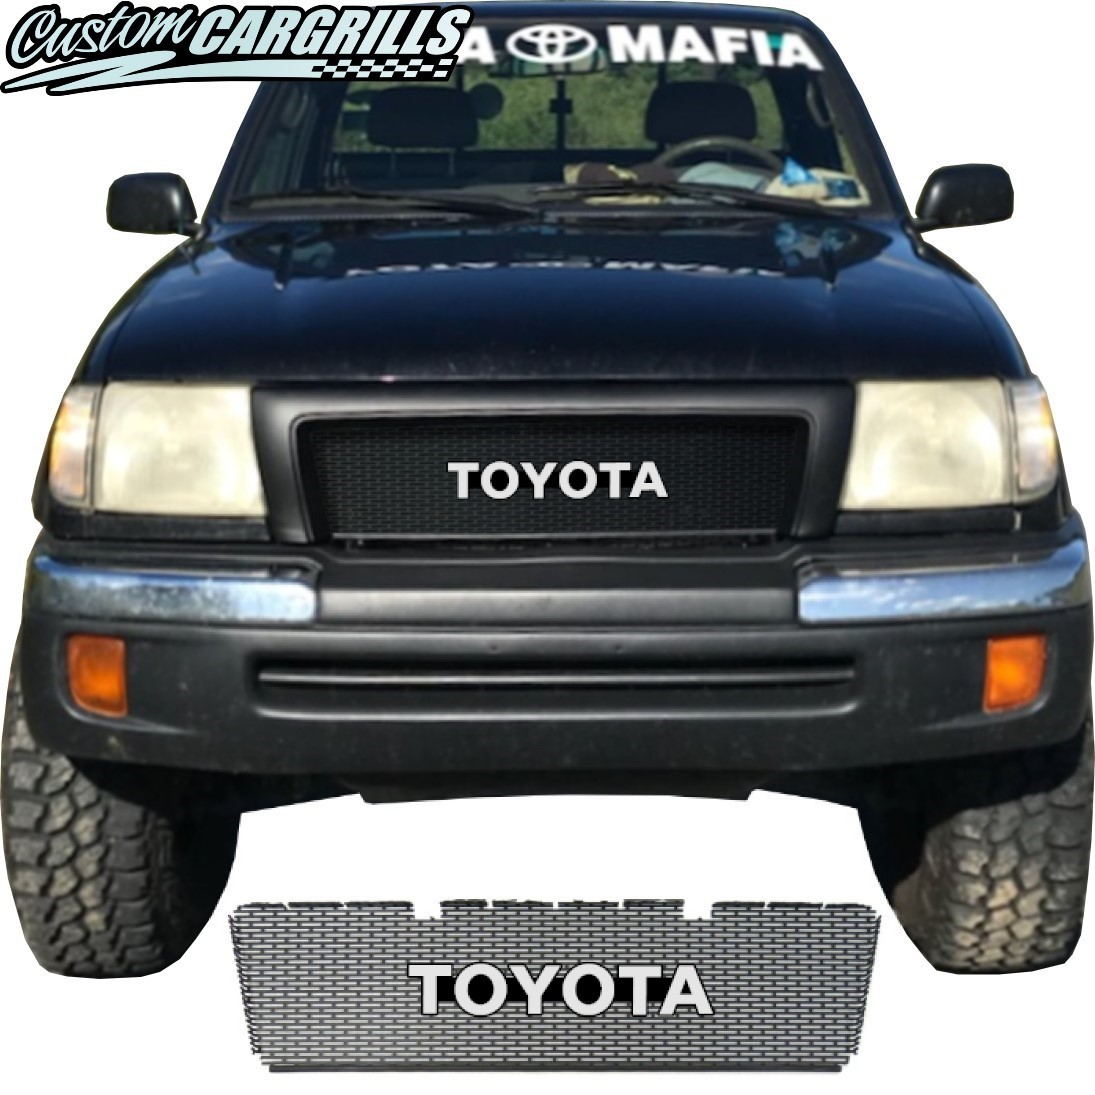 1998-2000 Toyota Tacoma Grill Mesh With Toyota Emblem